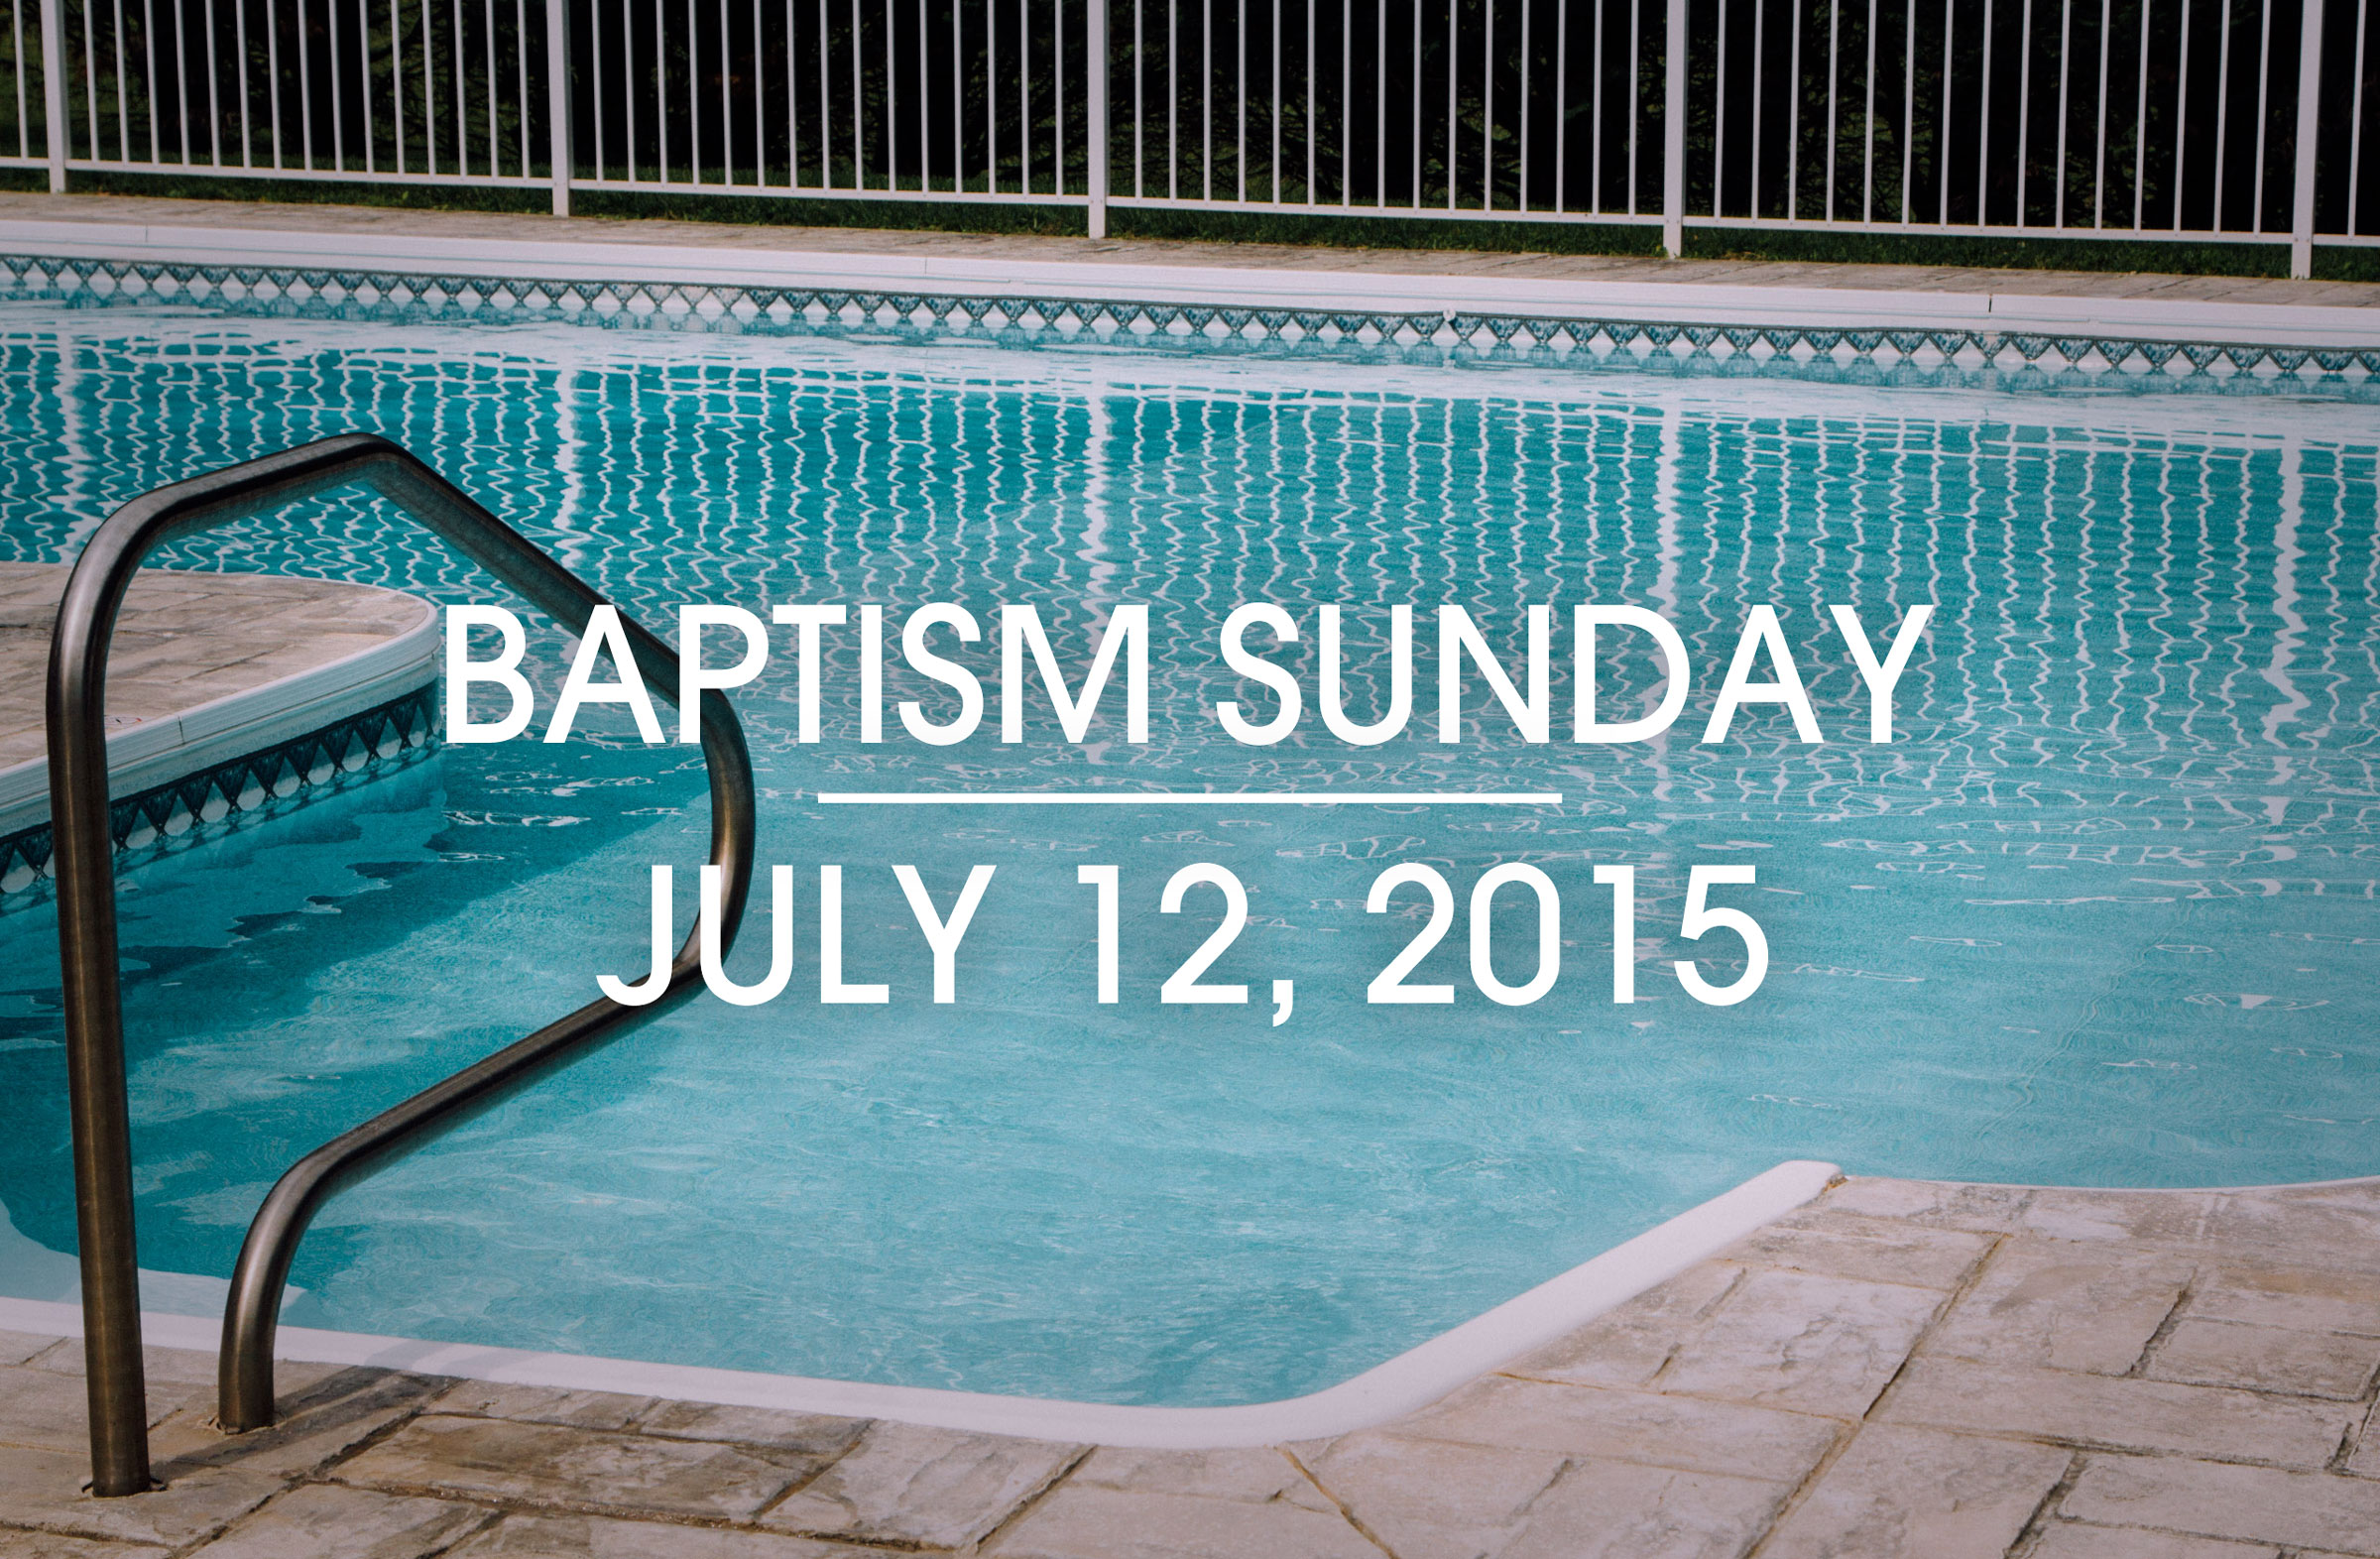 grace-church-baptism-sunday-july-12